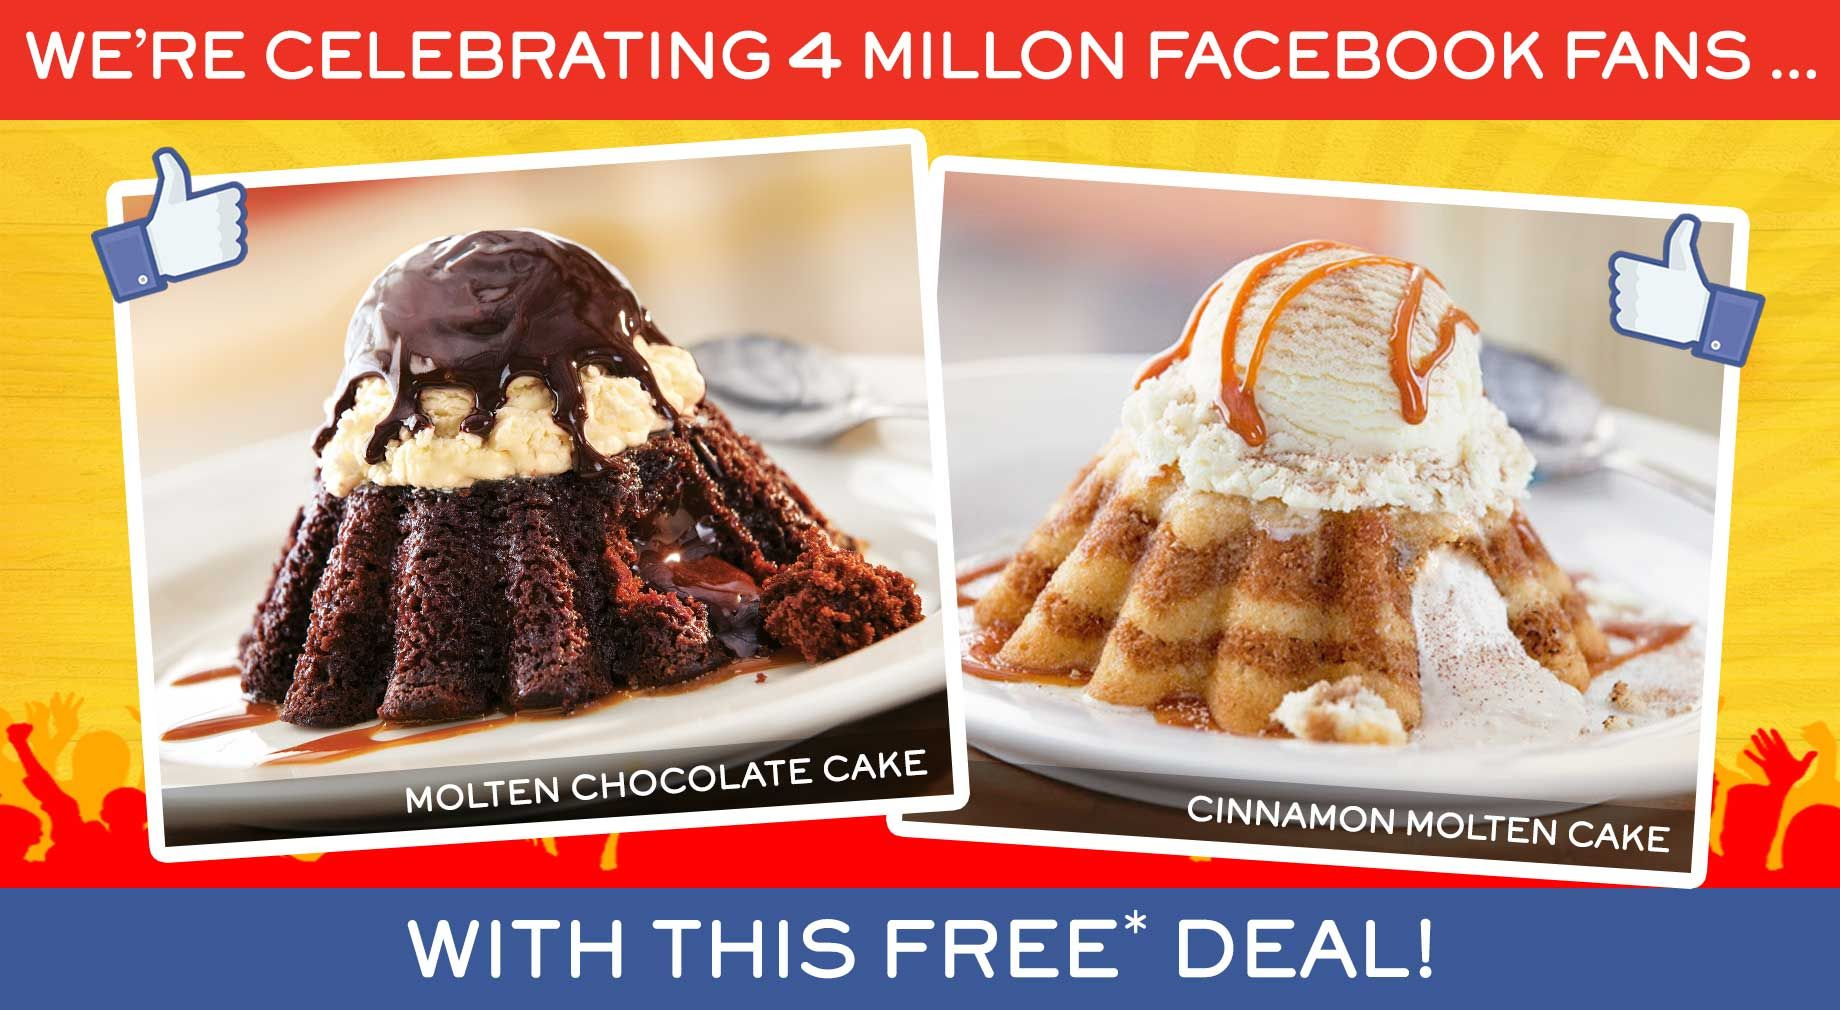 CHILI'S $$ Reminder: Coupon for FREE Dessert of Your Choice – Expires TODAY (5/15)!